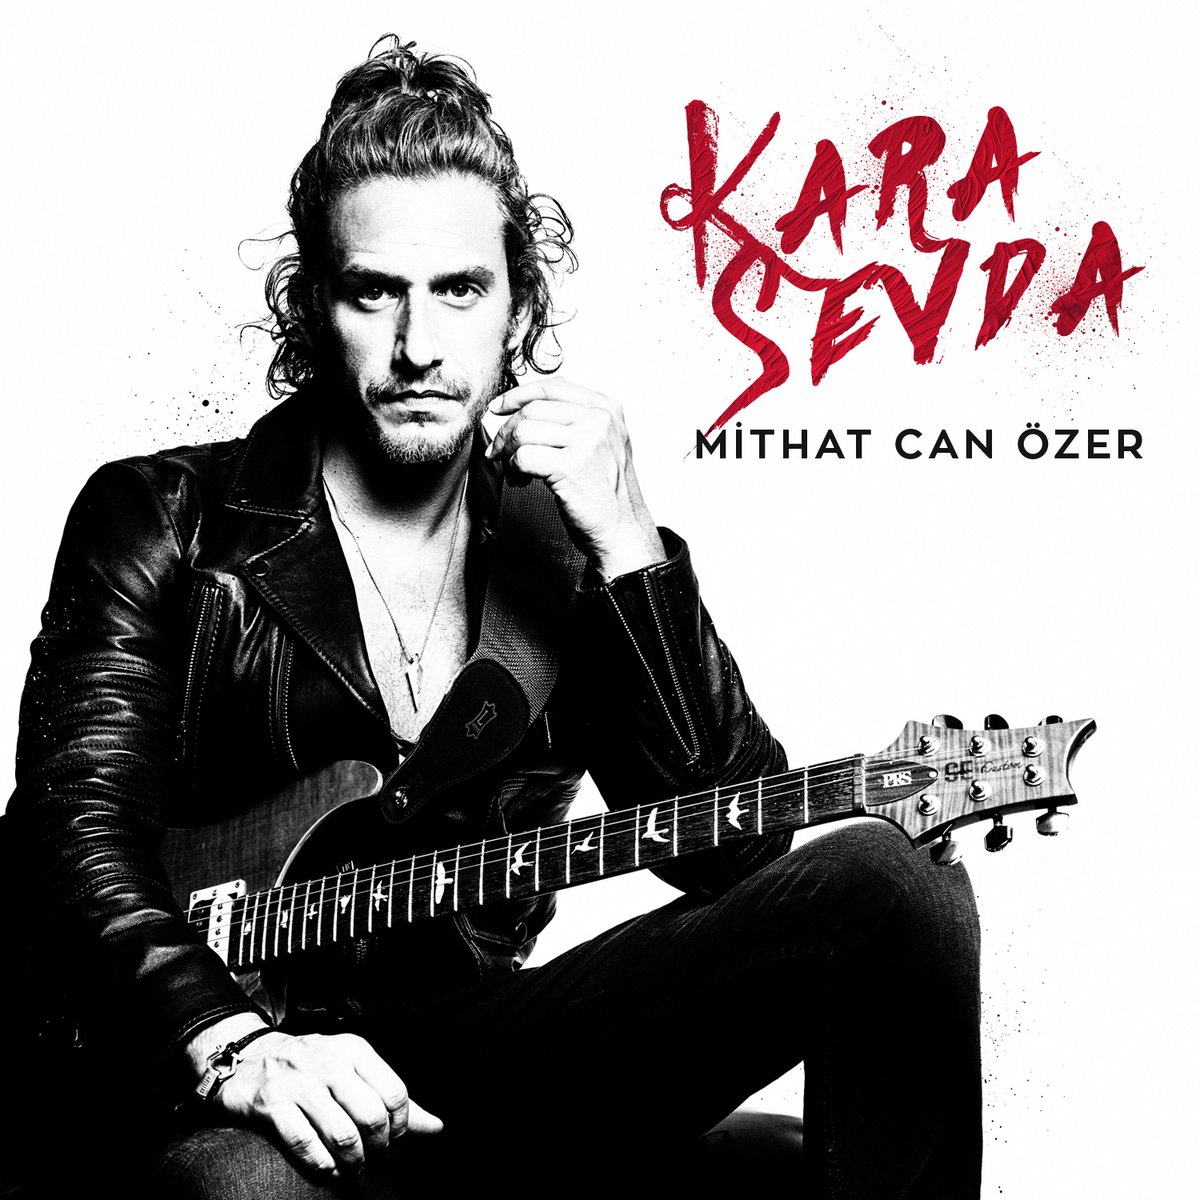 mithat-can-ozer-001.jpg